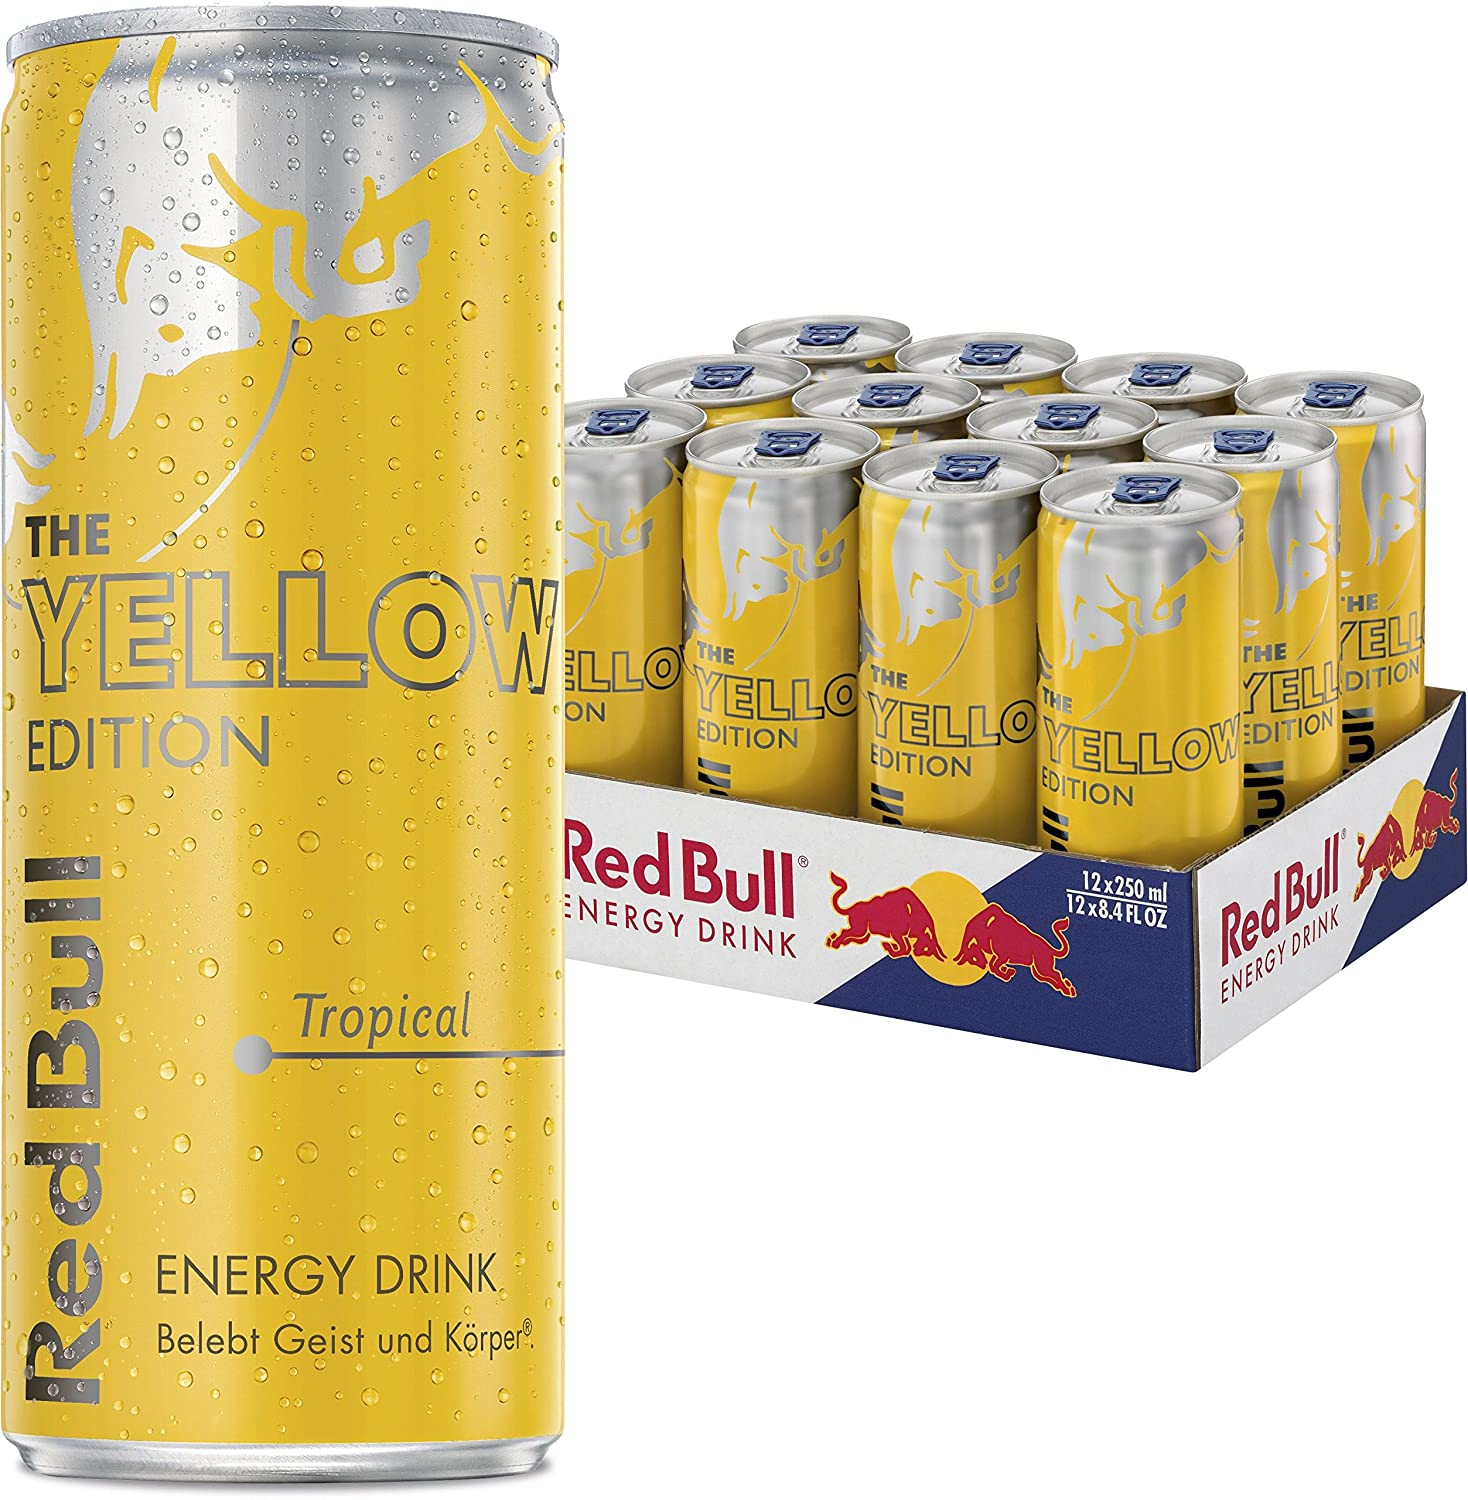 Red Bull Yellow Edition amazon